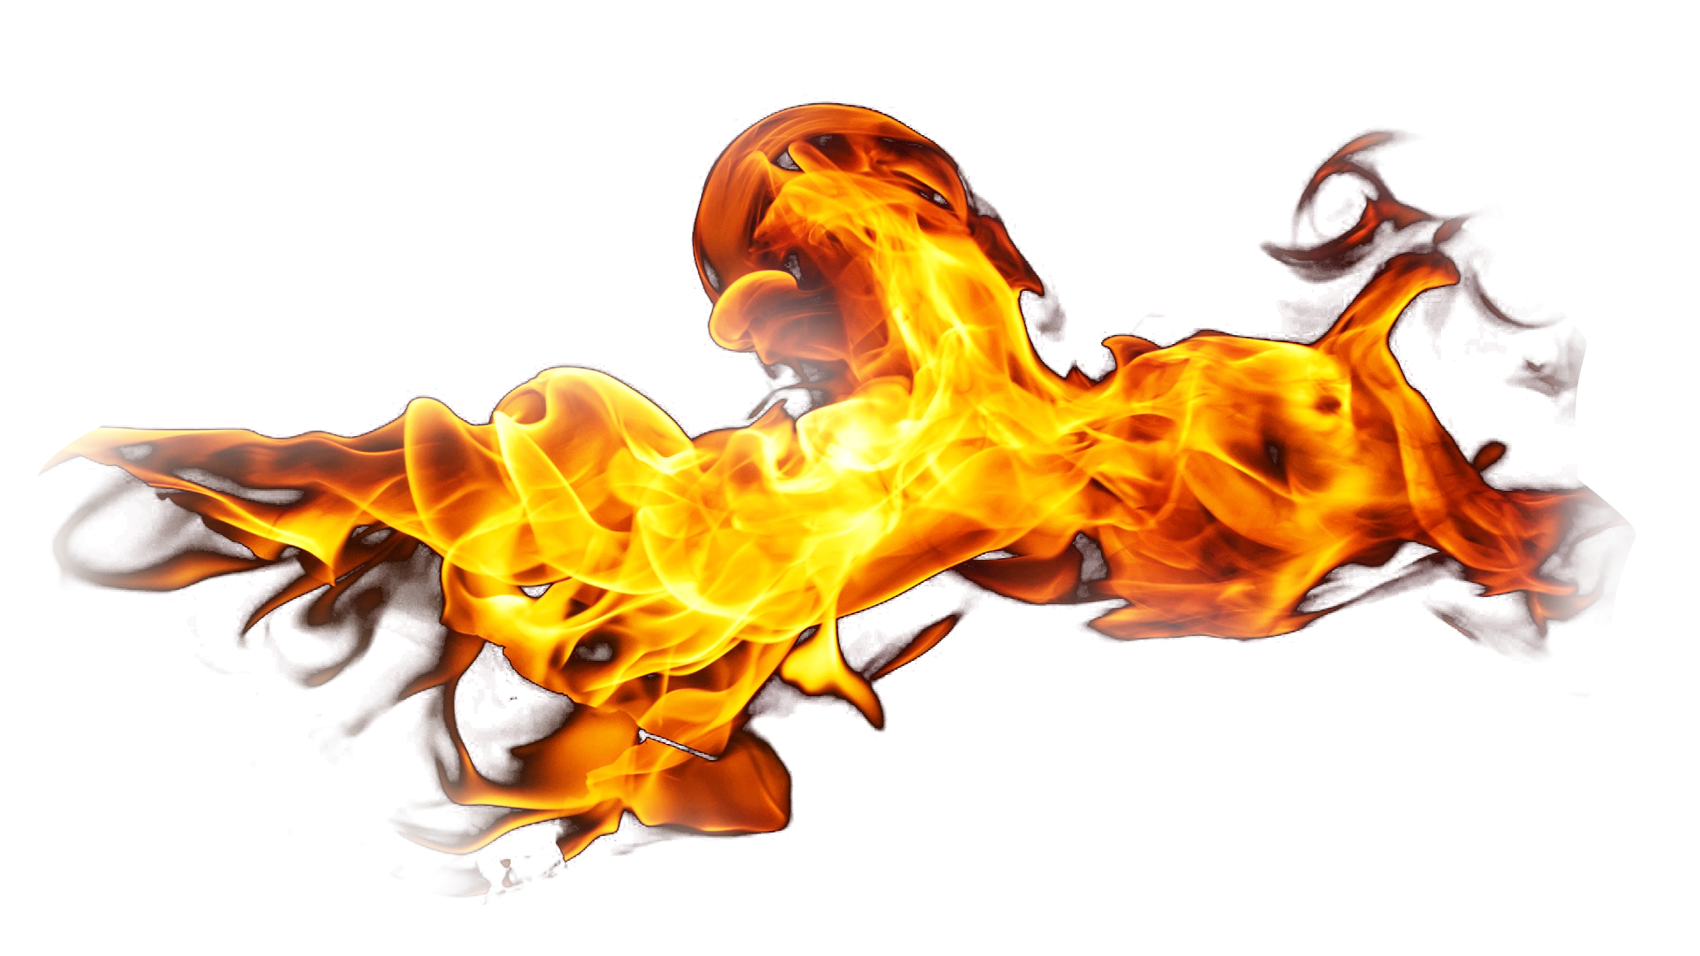 Fire Png Clipart Download 44294 Free Icons And Png Backgrounds